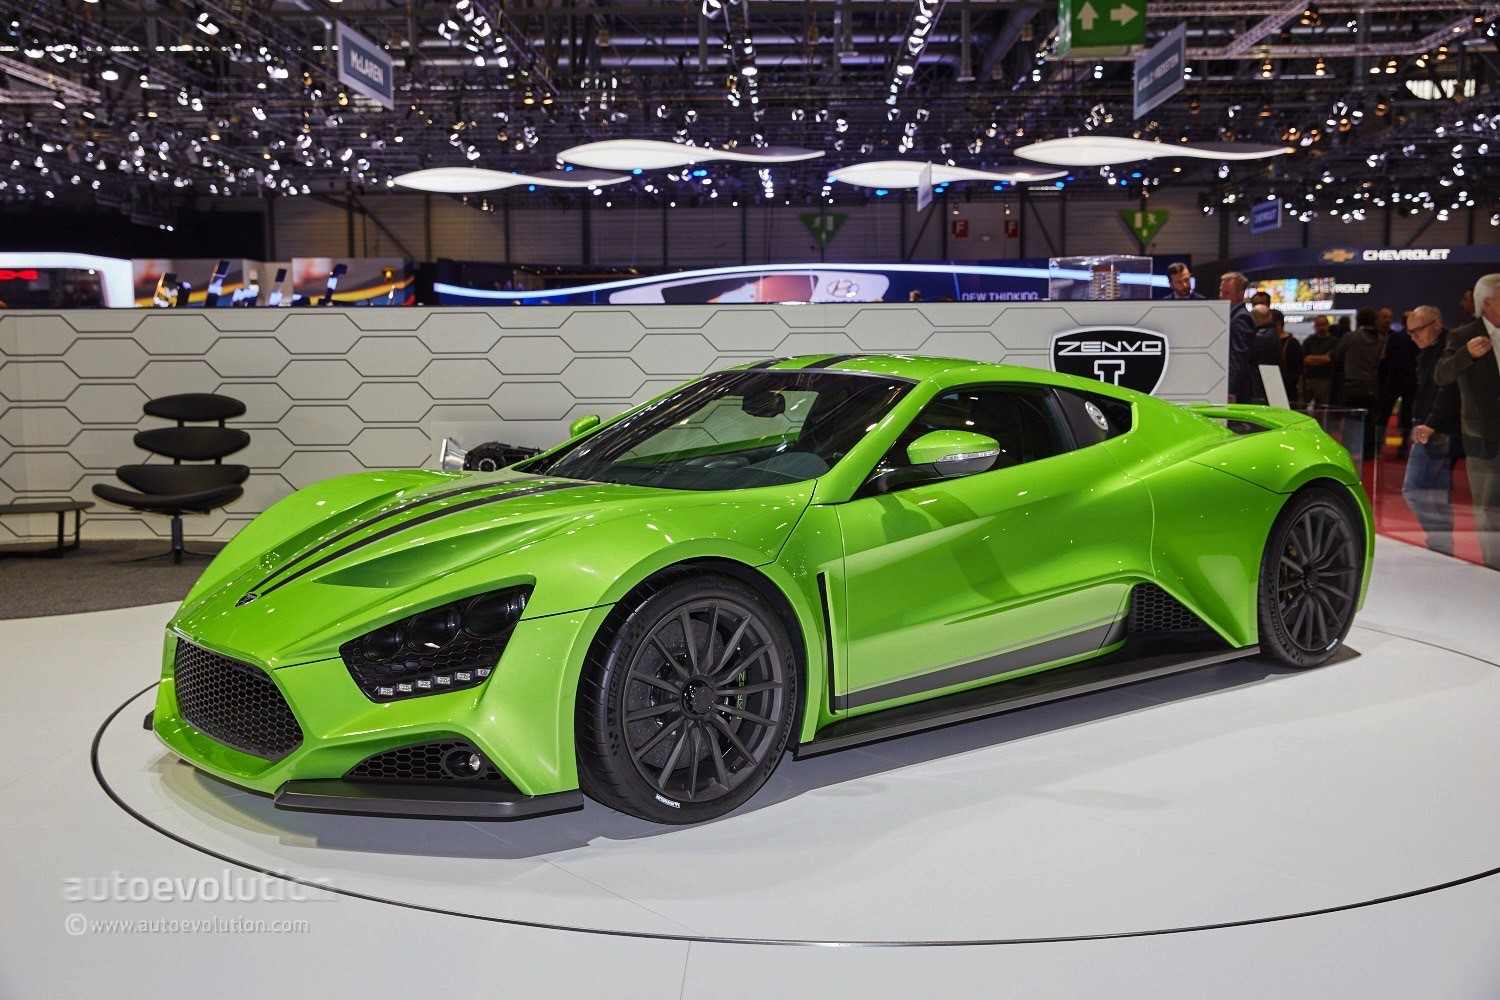 Zenvo St1 Supercar Shows Up In Geneva With New